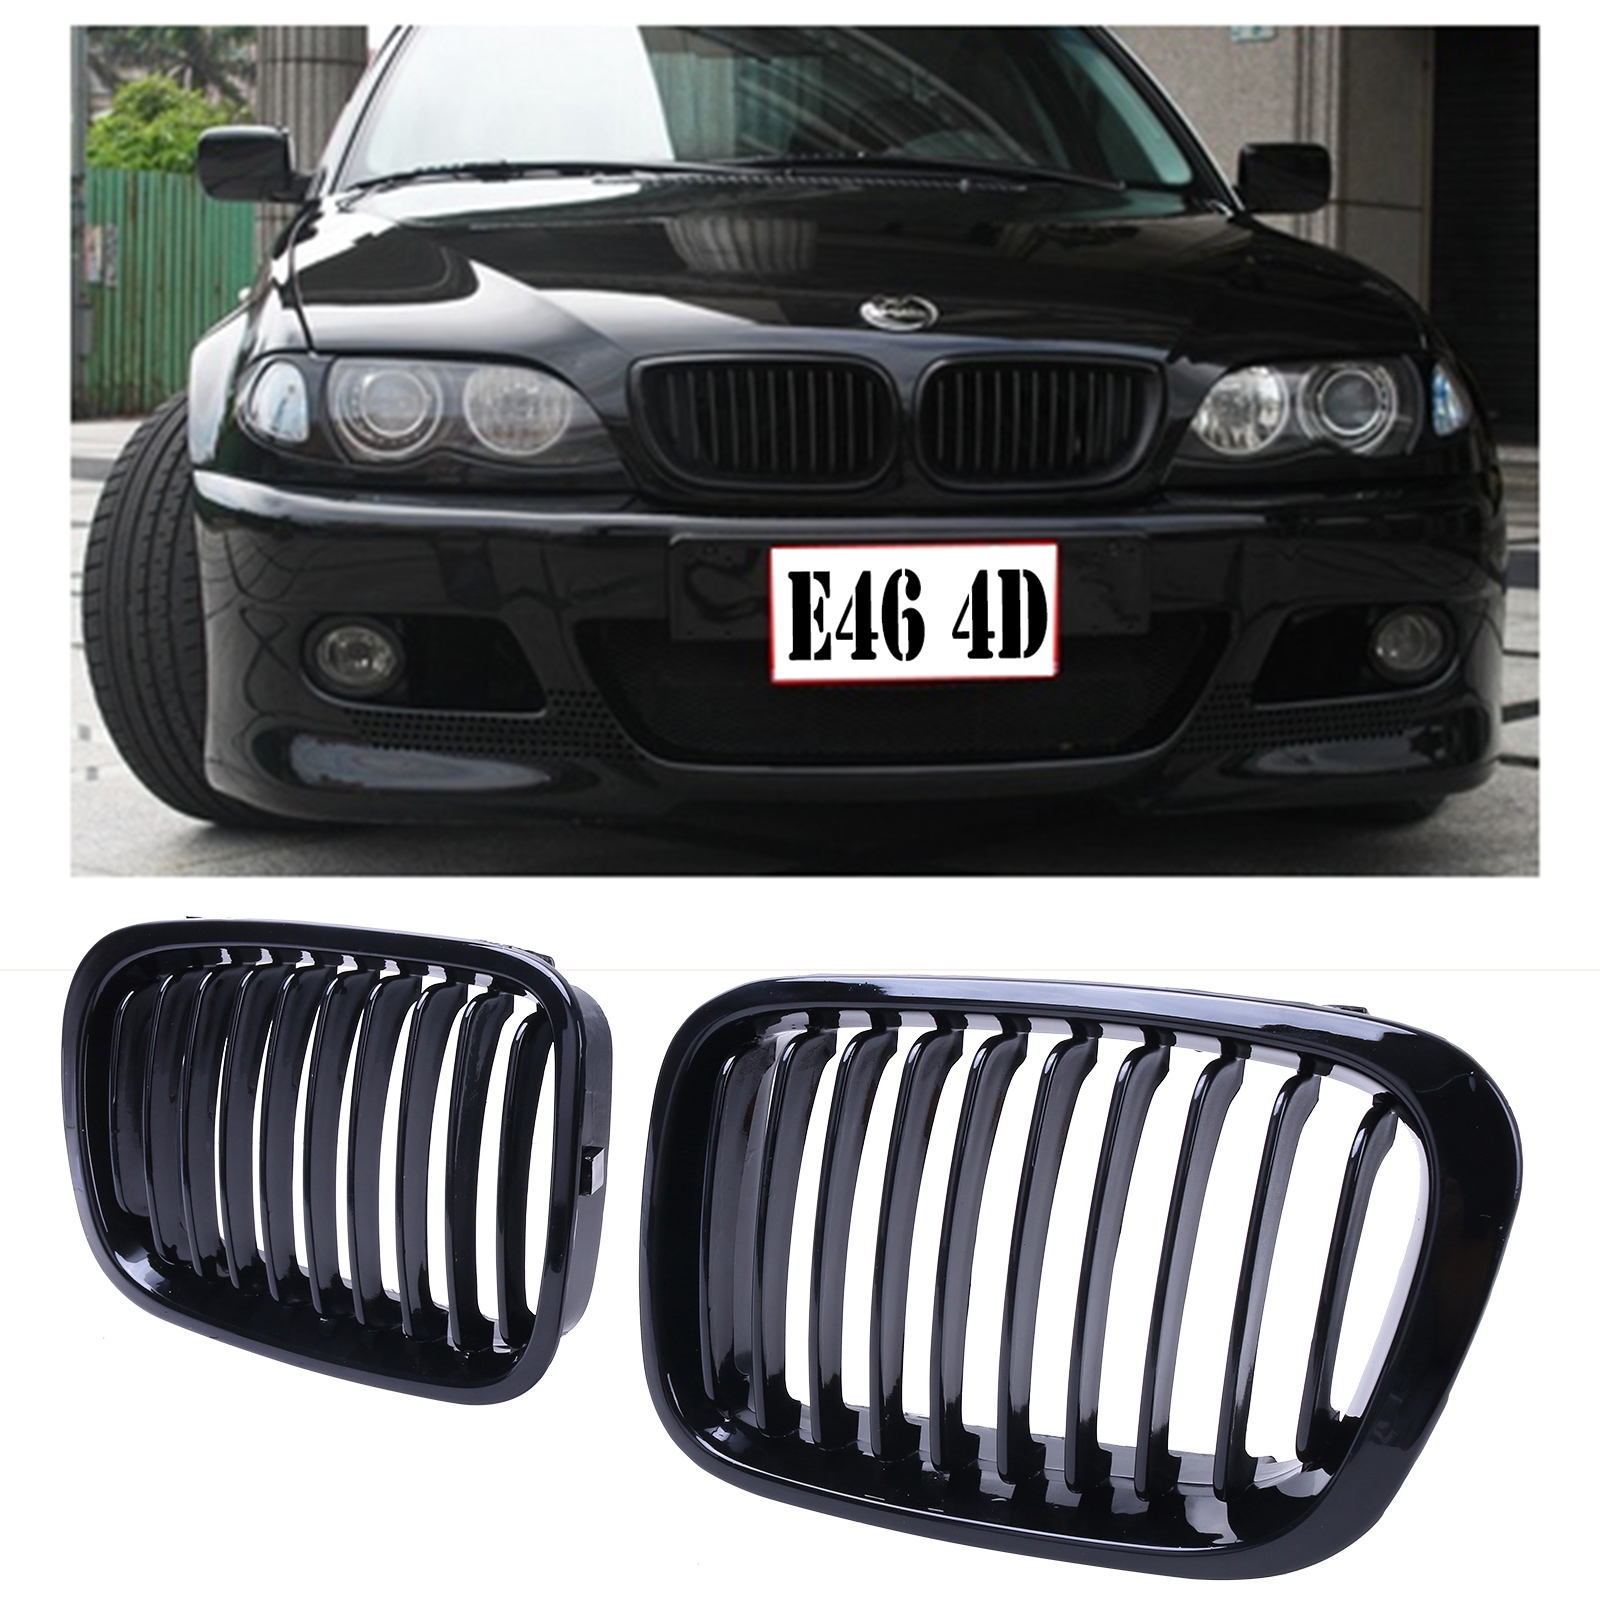 2x gloss black front kidney grills grille fit bmw for bmw e46 sedan 320i 325i 325xi